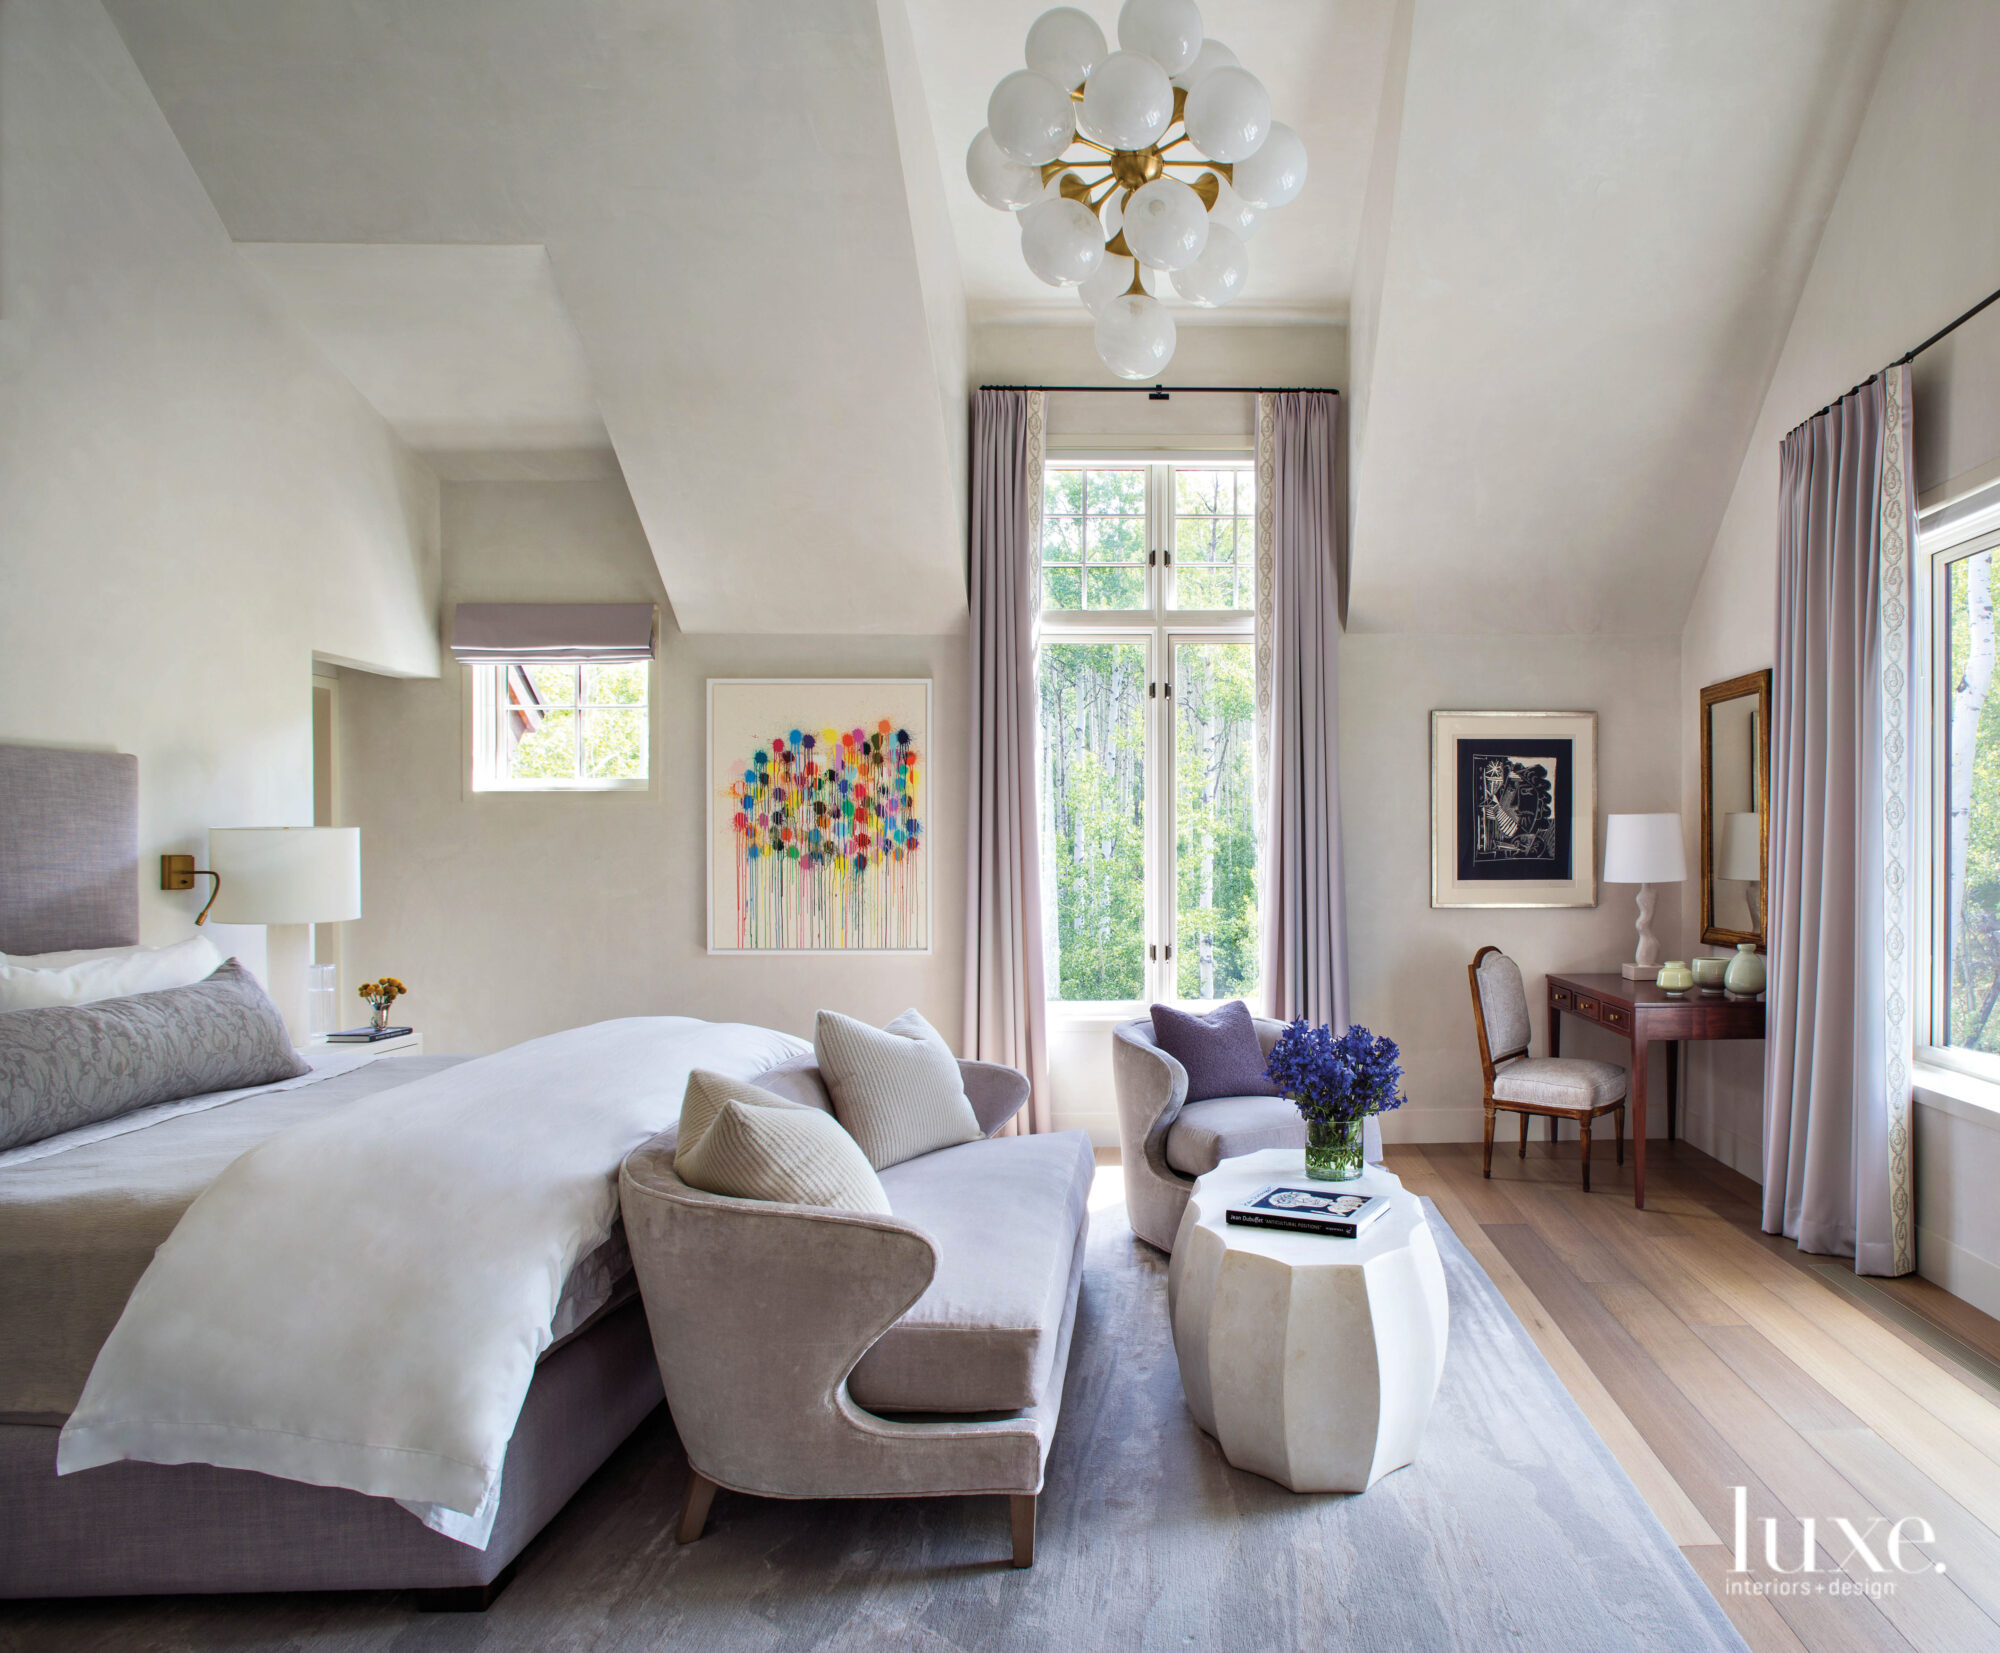 A light-filled bedroom has a...